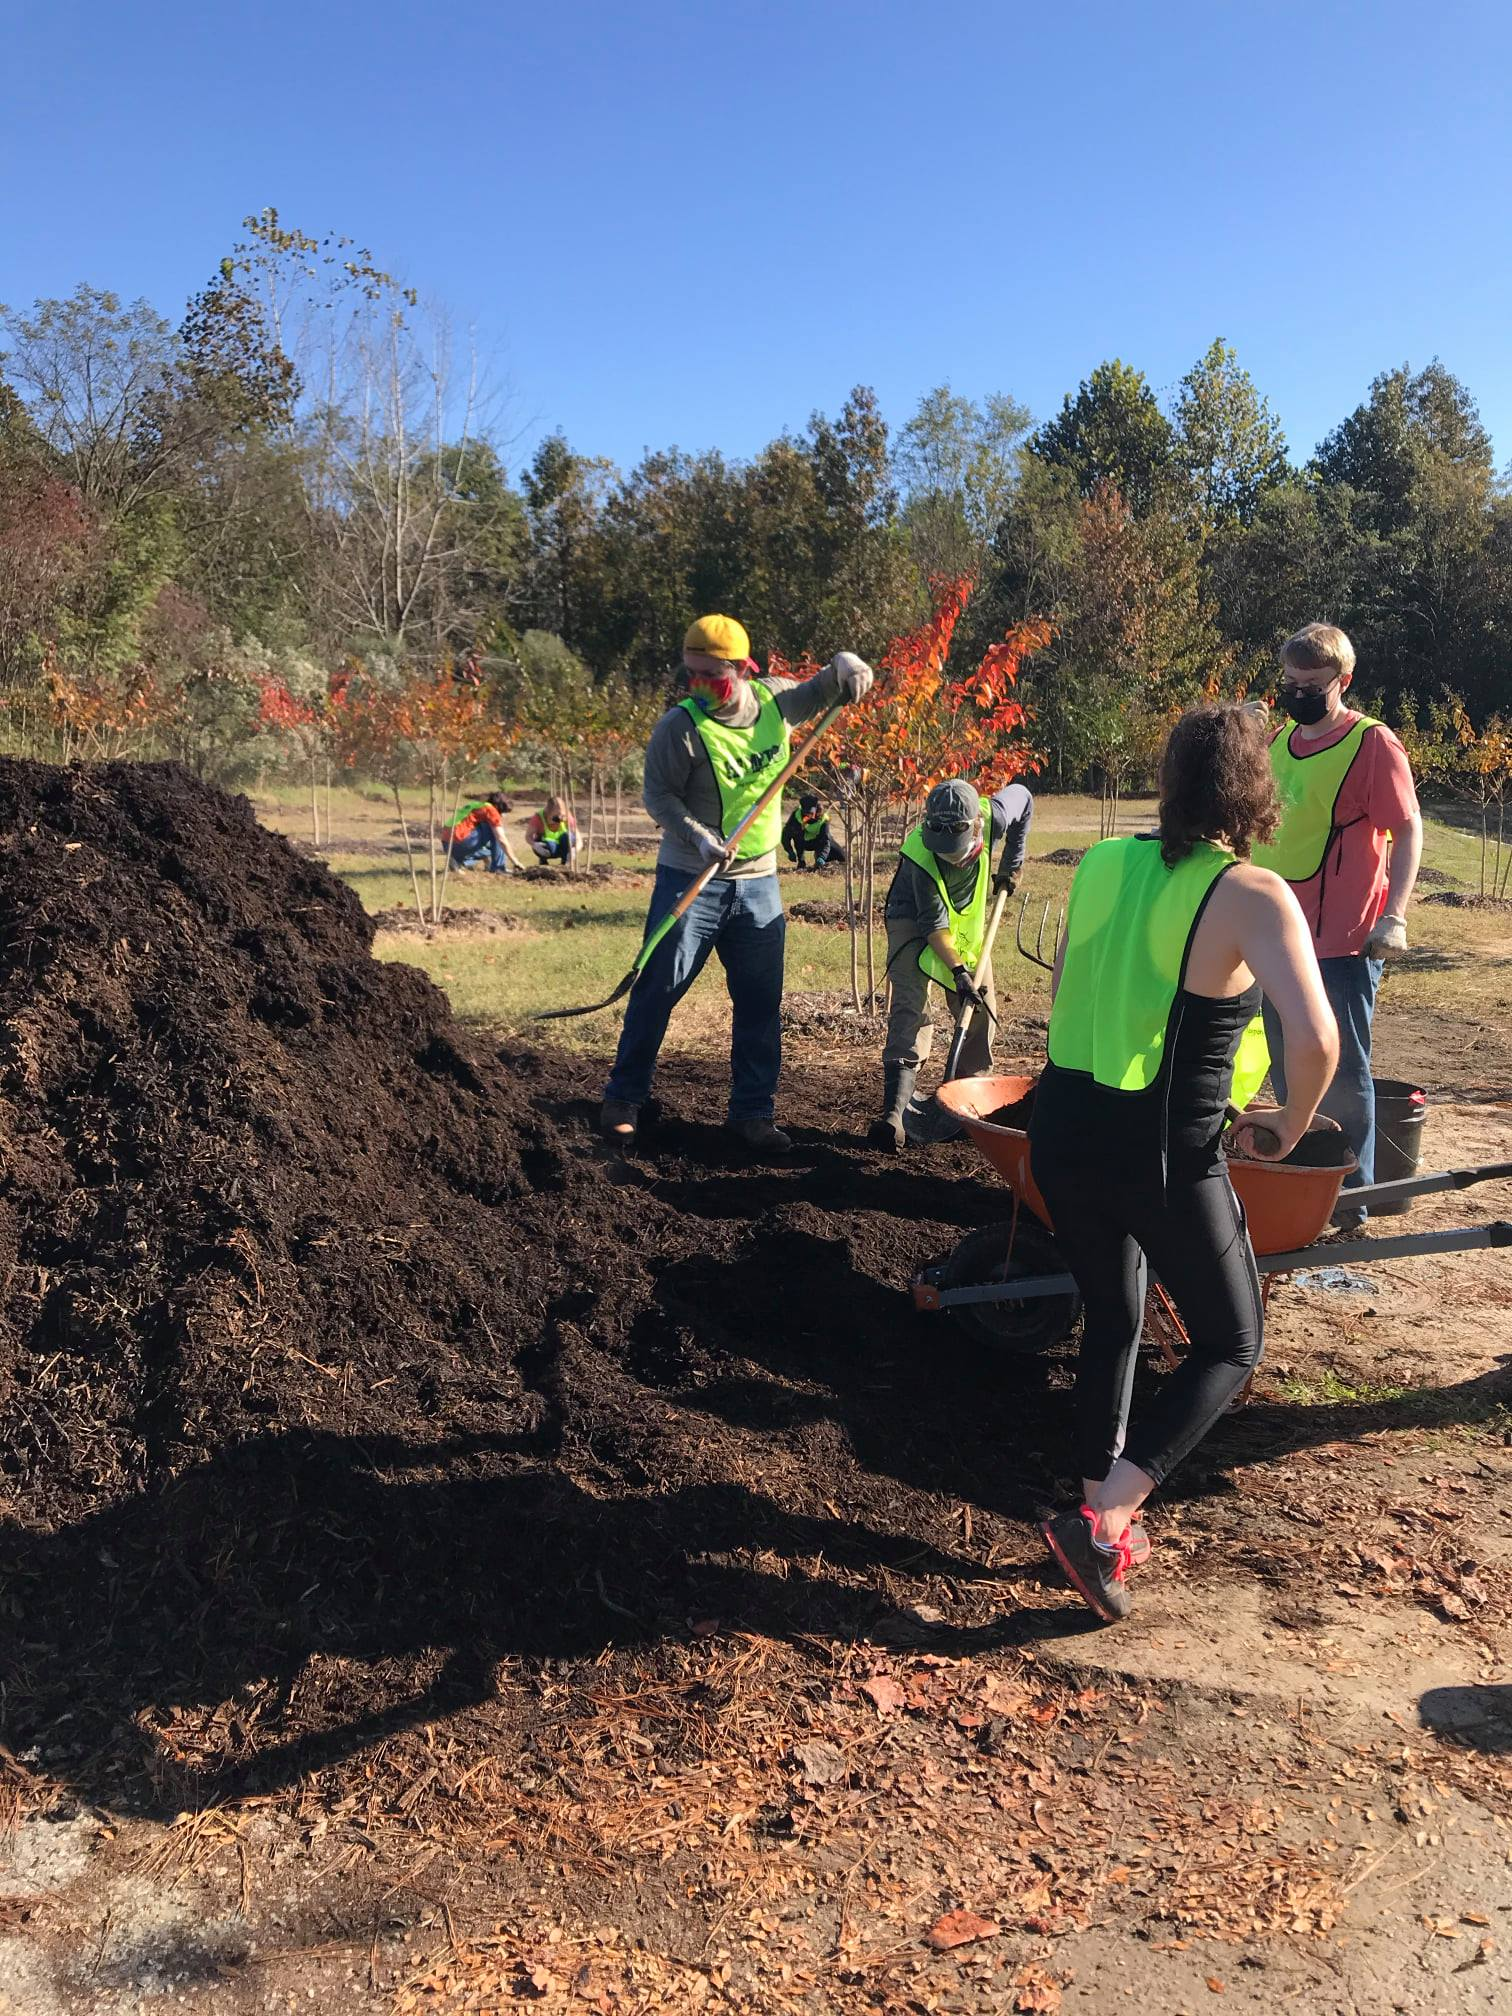 Volunteers shoveling mulch